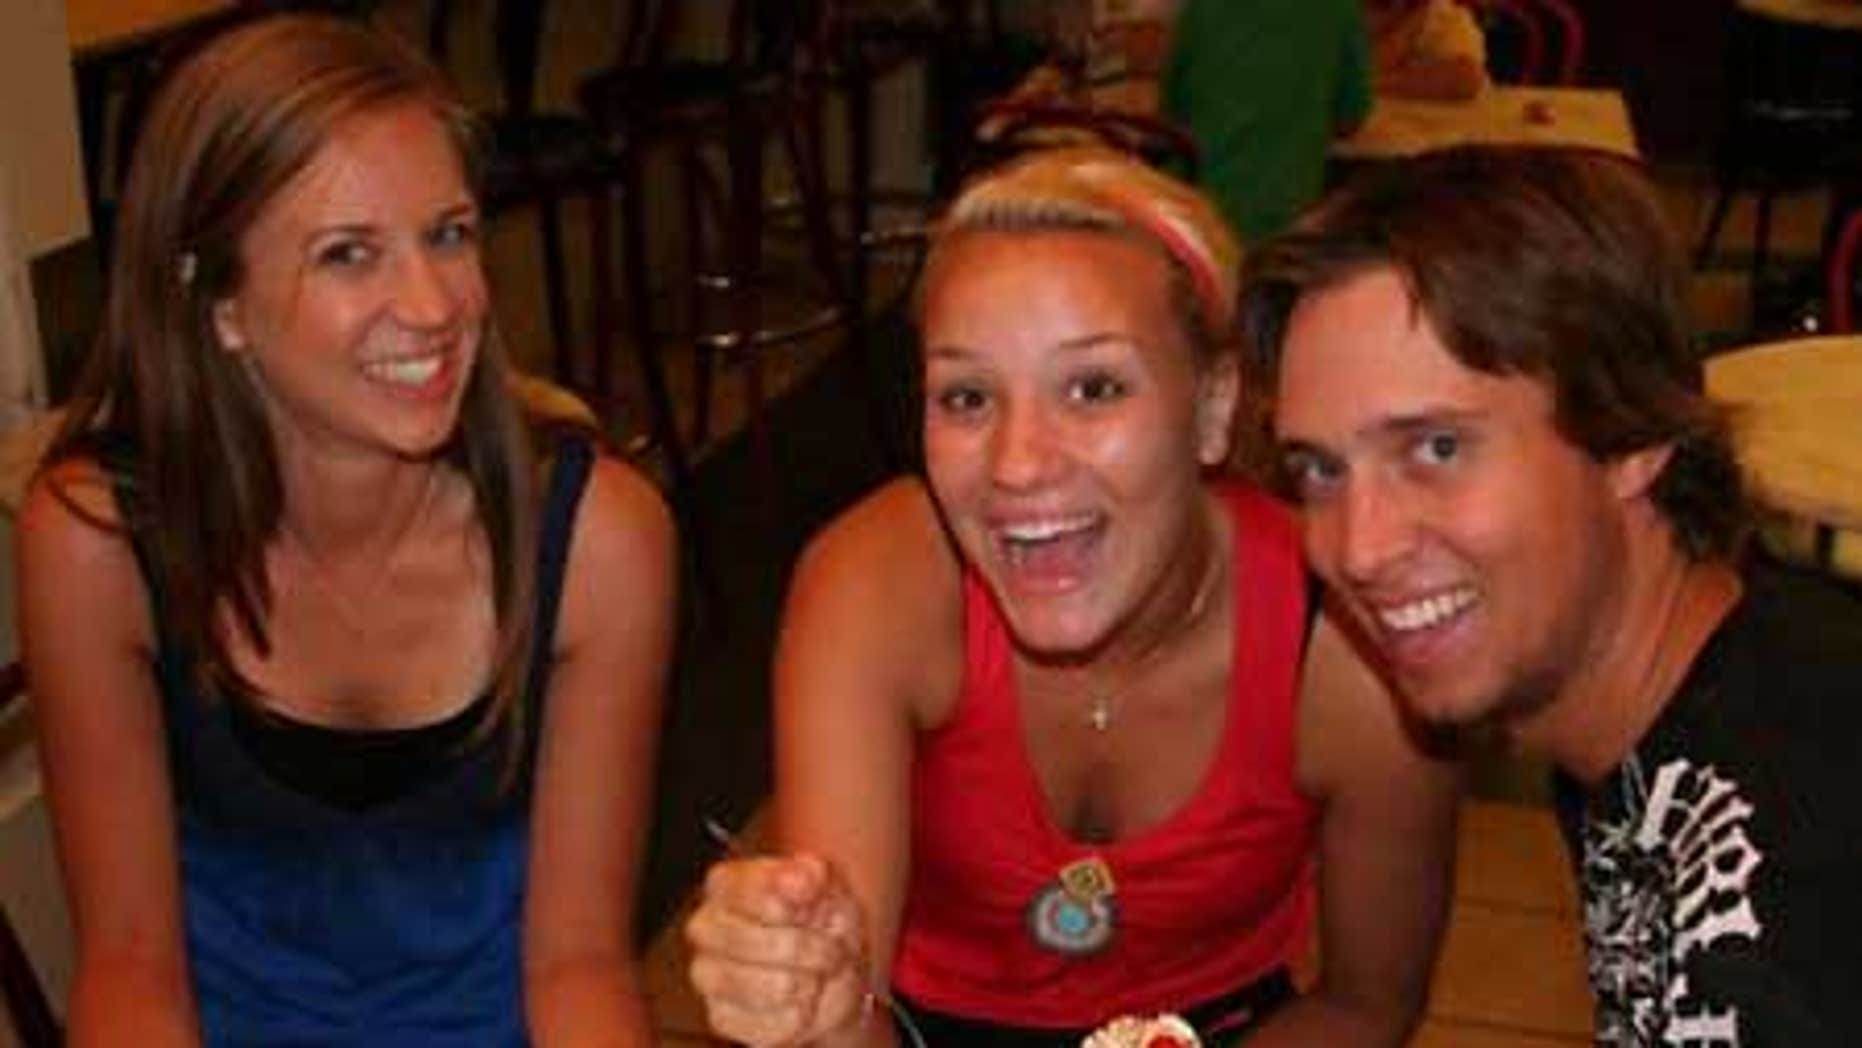 James Wernke with his sister Kristina (left) and girlfriend Sami Bock in July.